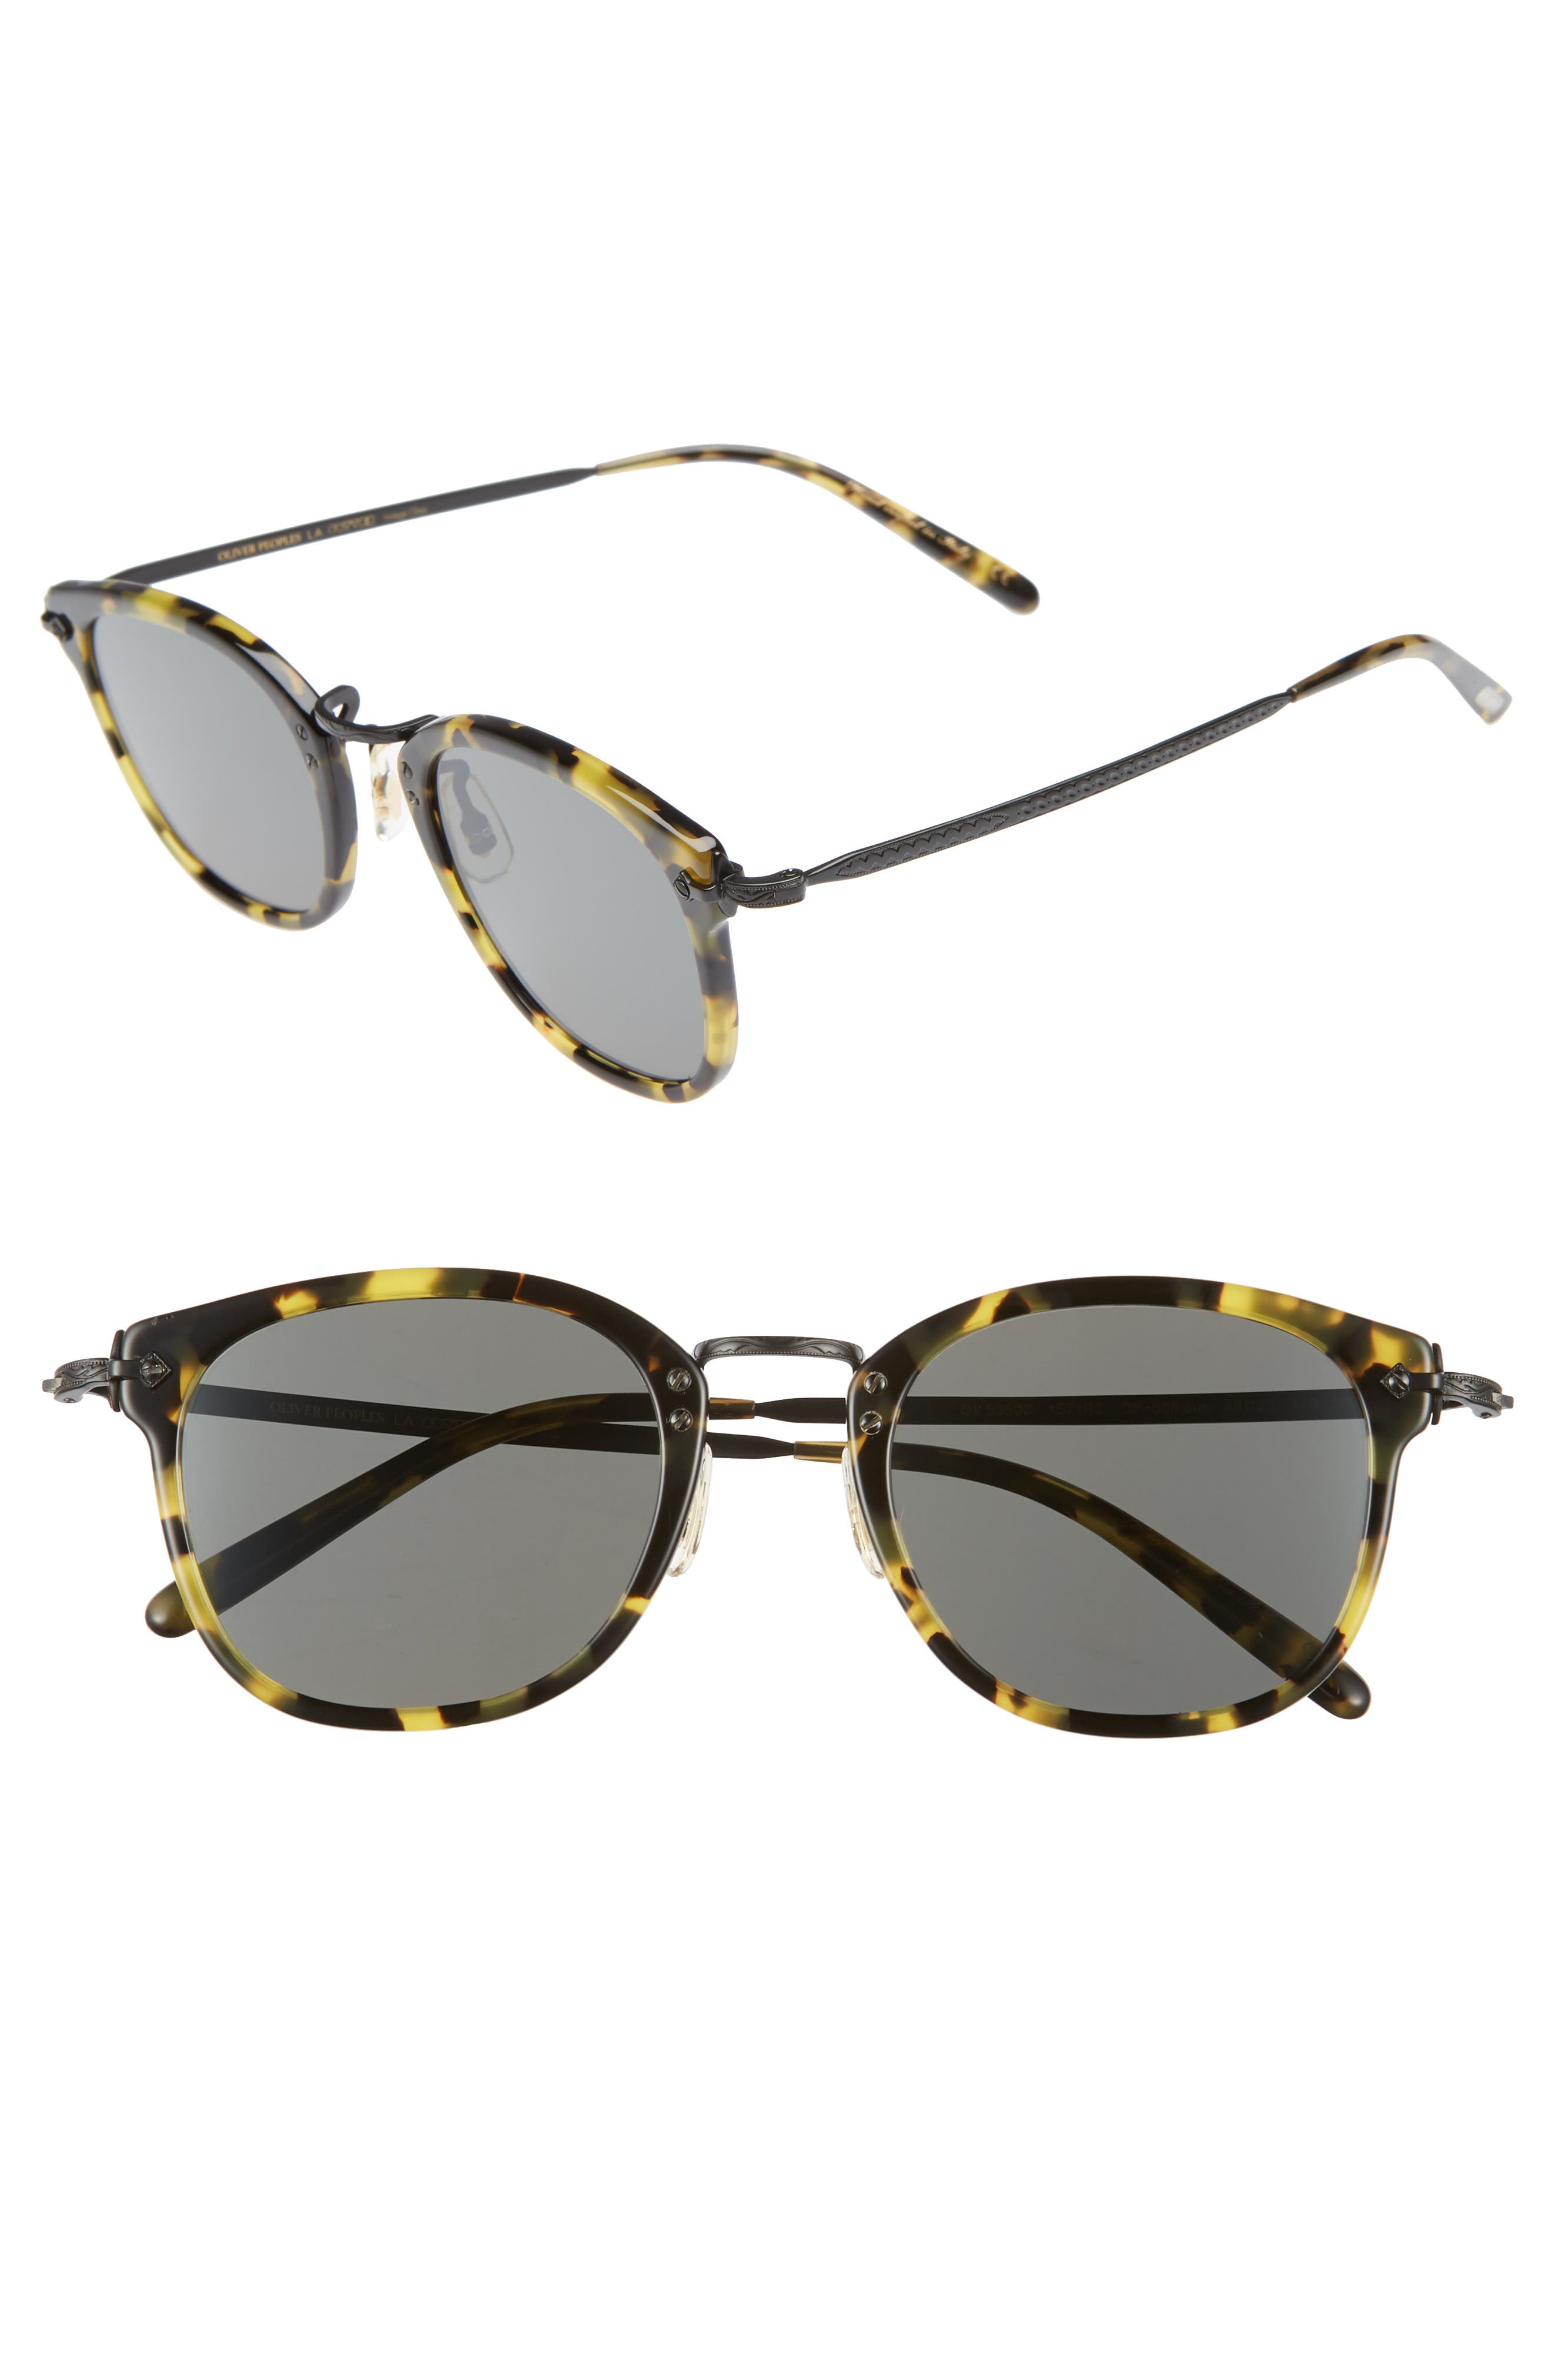 49mm Round Sunglasses,                         Main,                         color, Vintage Dark Tortoise